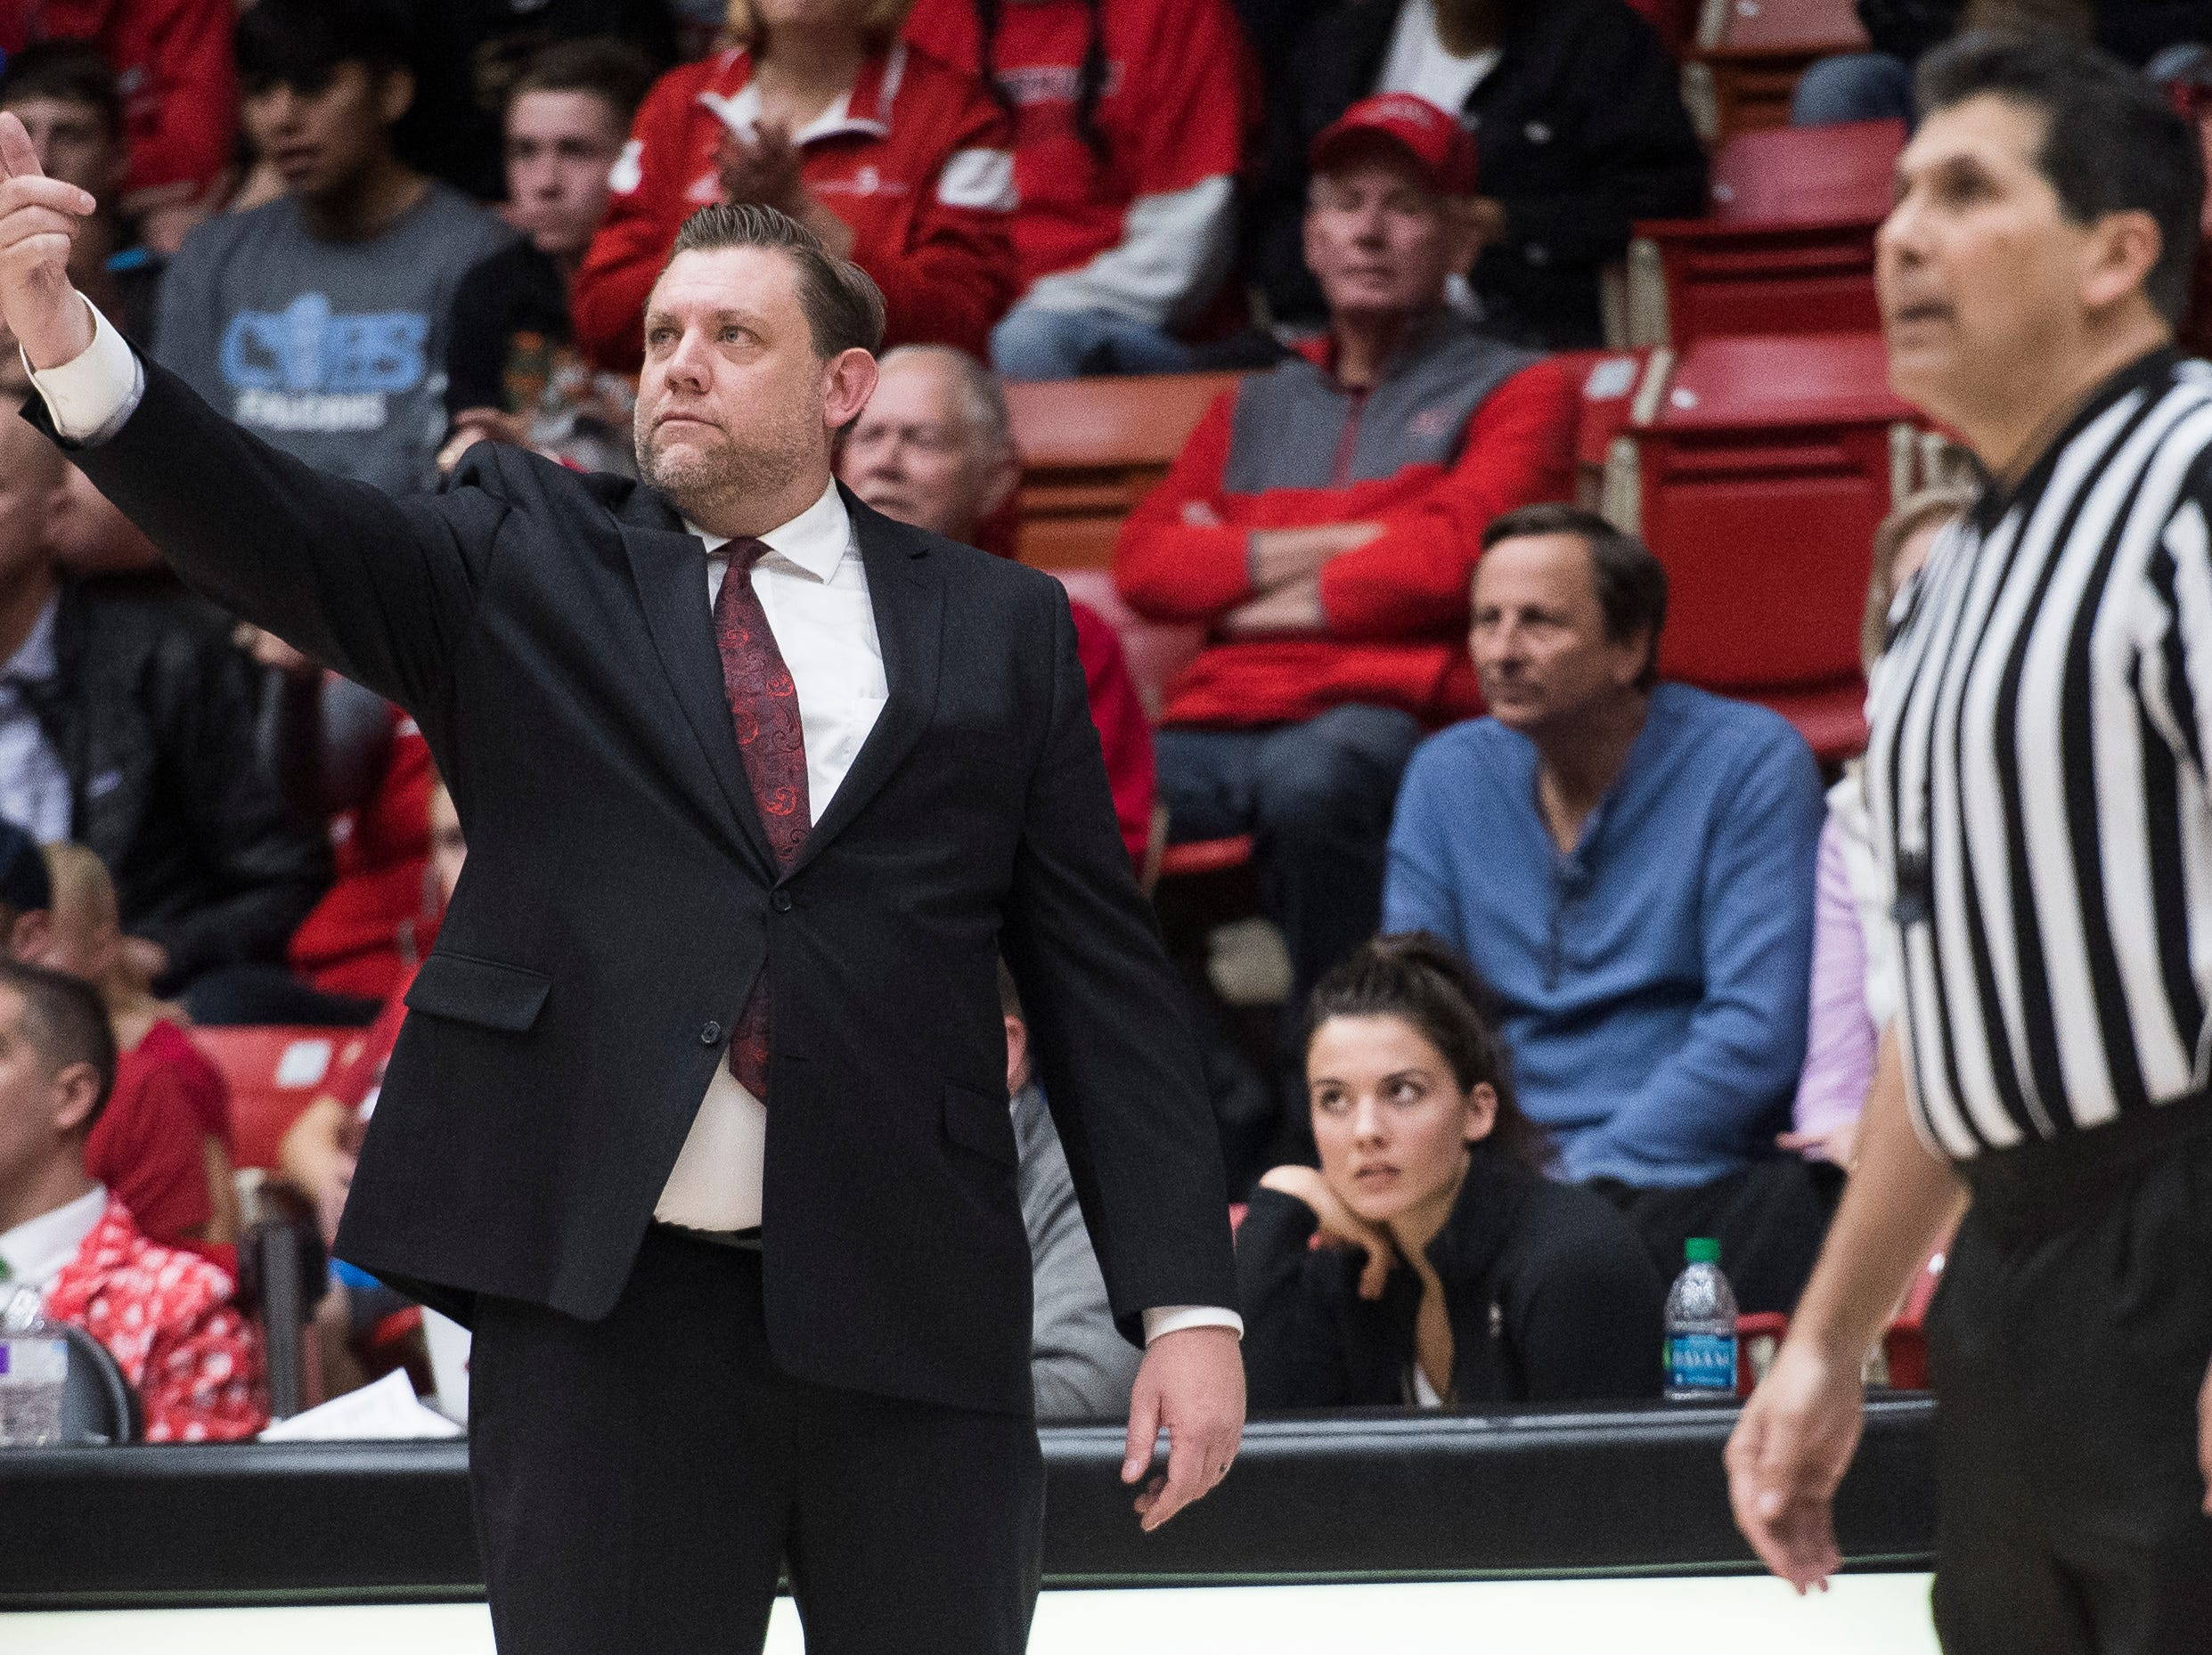 Southern Utah University head coach Todd Simon gestures to the replay screen in protest of a penalty call during the game against Pepperdine University in the America First Event Center Saturday, December 15, 2018. SUU won in overtime, 78-69.